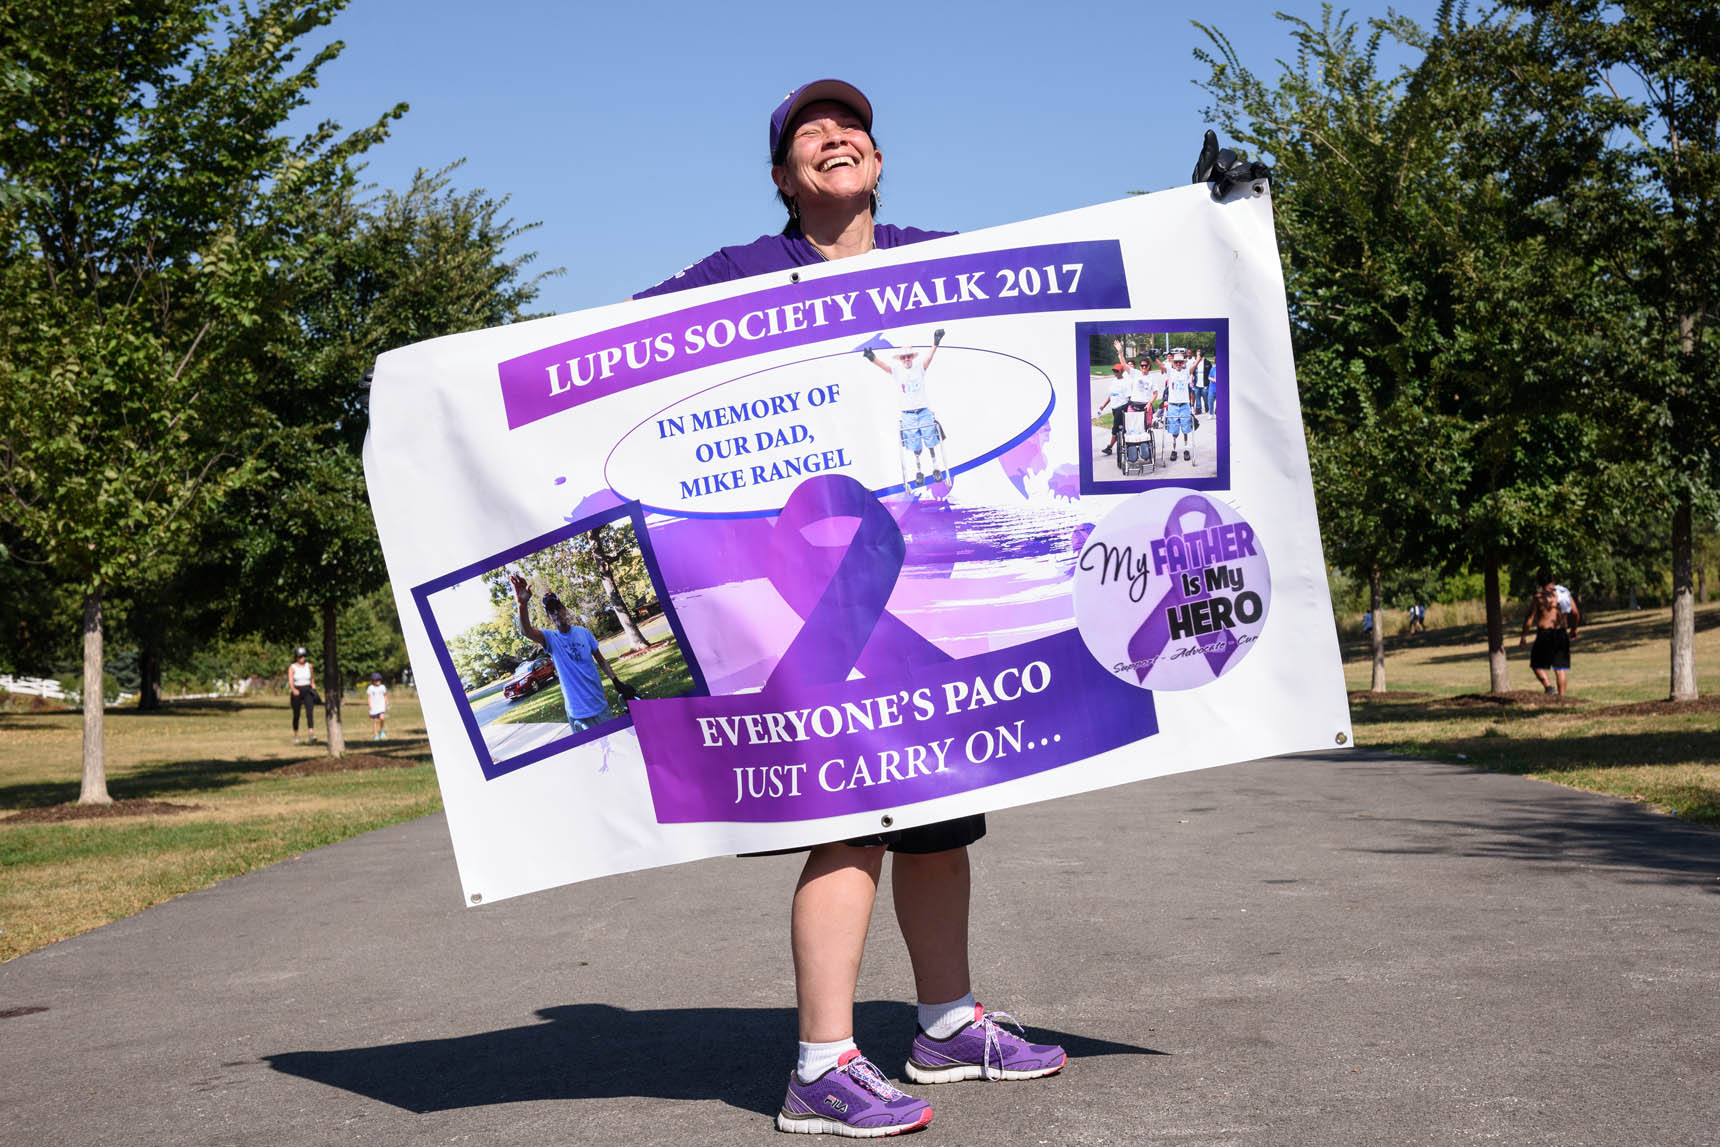 Lupus Society of Illinois Chicago Walkaton 2017 - Raising money for the fight against lupus - Event photography by Michael Courier Photography